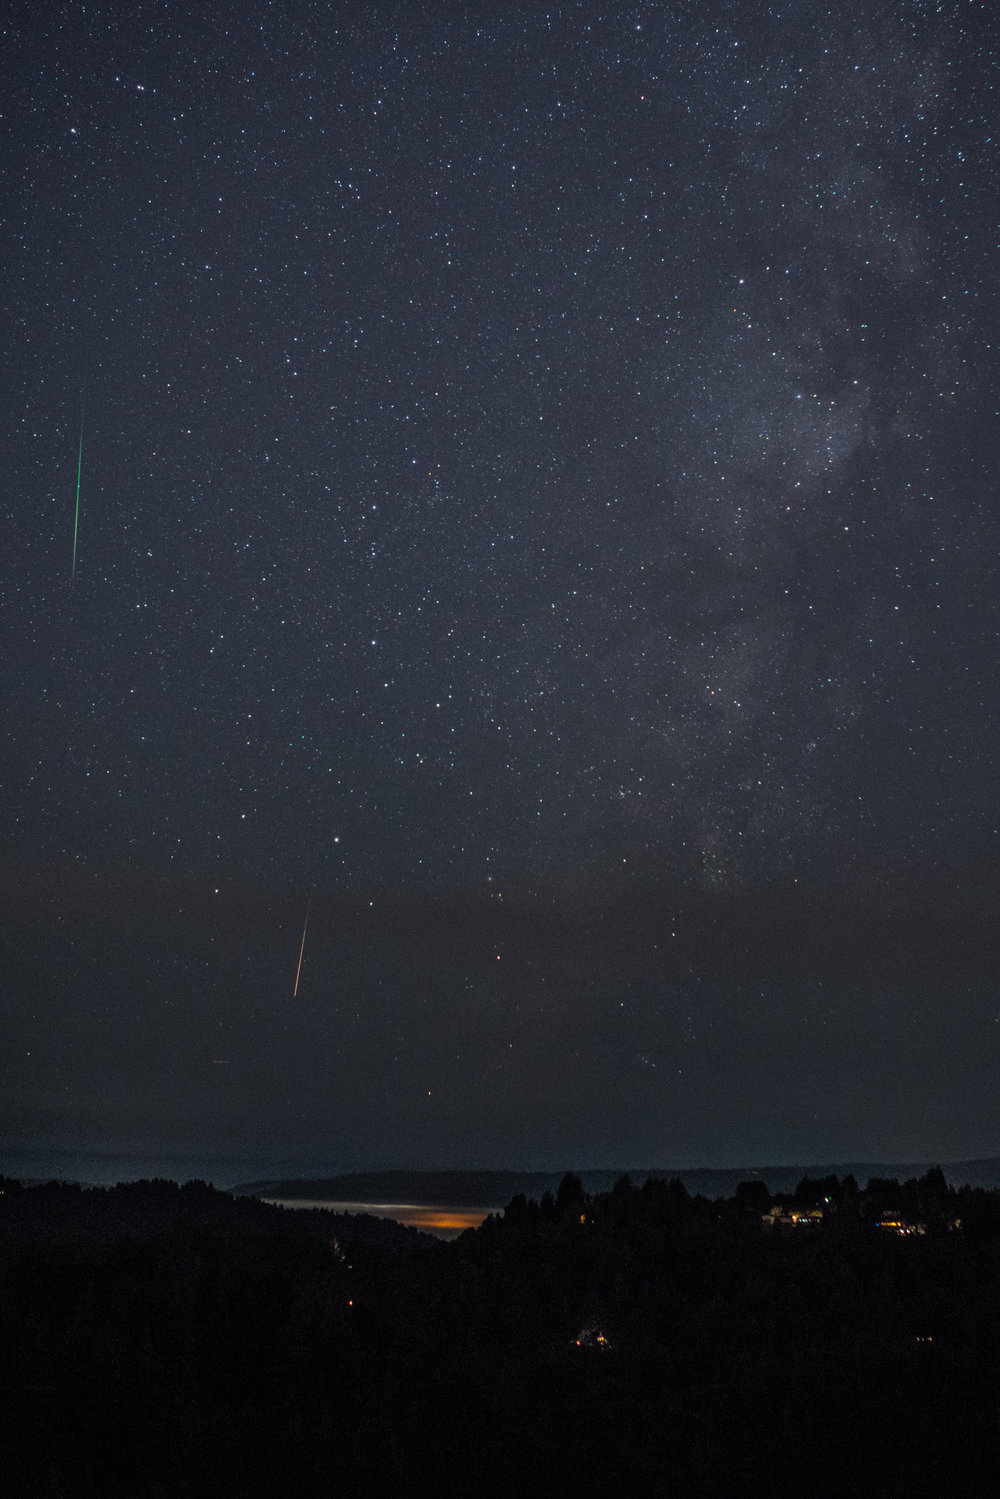 Perseid meteors burning up, viewed from Mt. Charlie Road